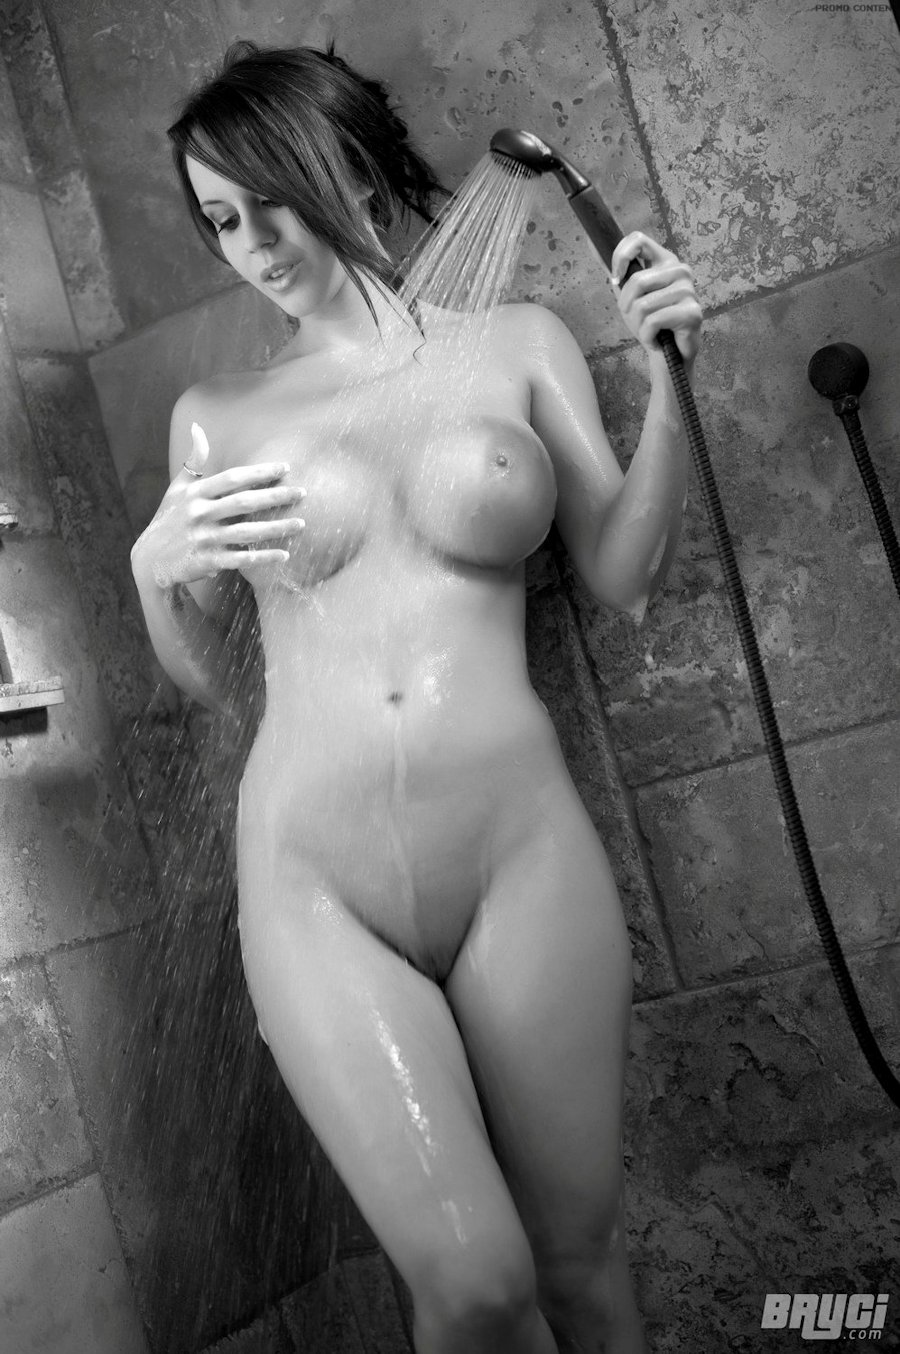 nude shower Hot girls